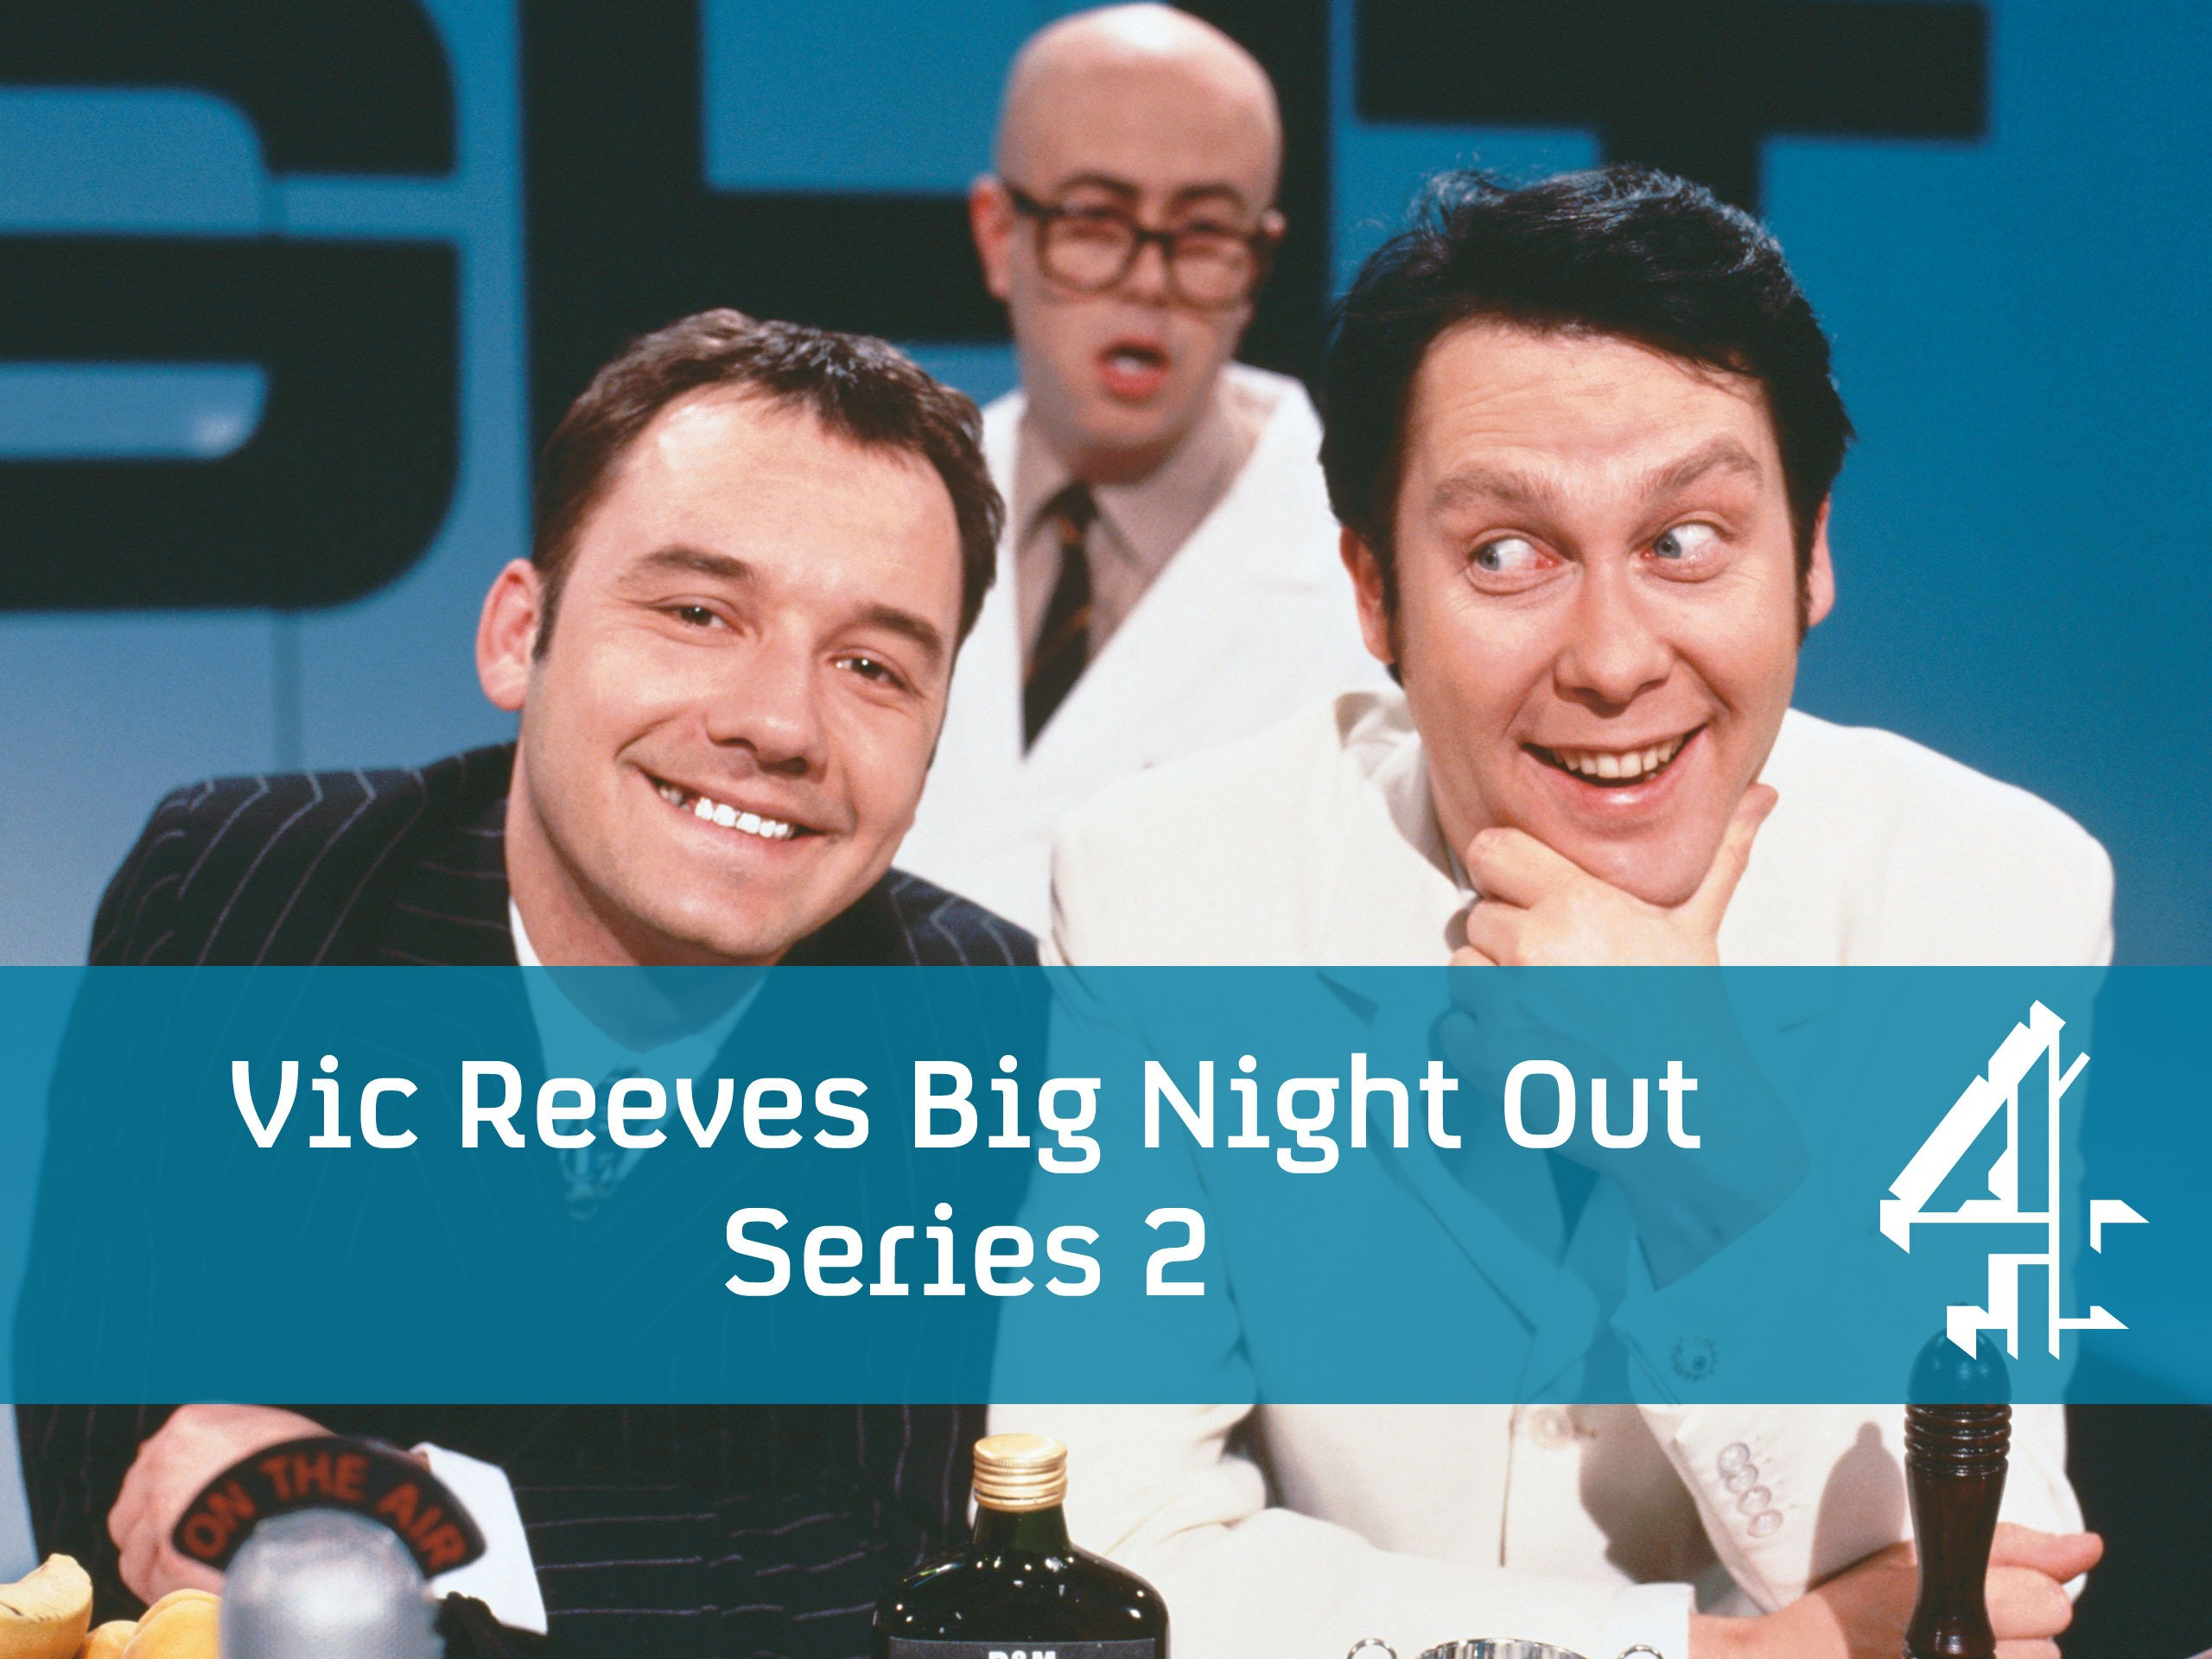 Watch Vic Reeves Big Night Out Season 2 Prime Video